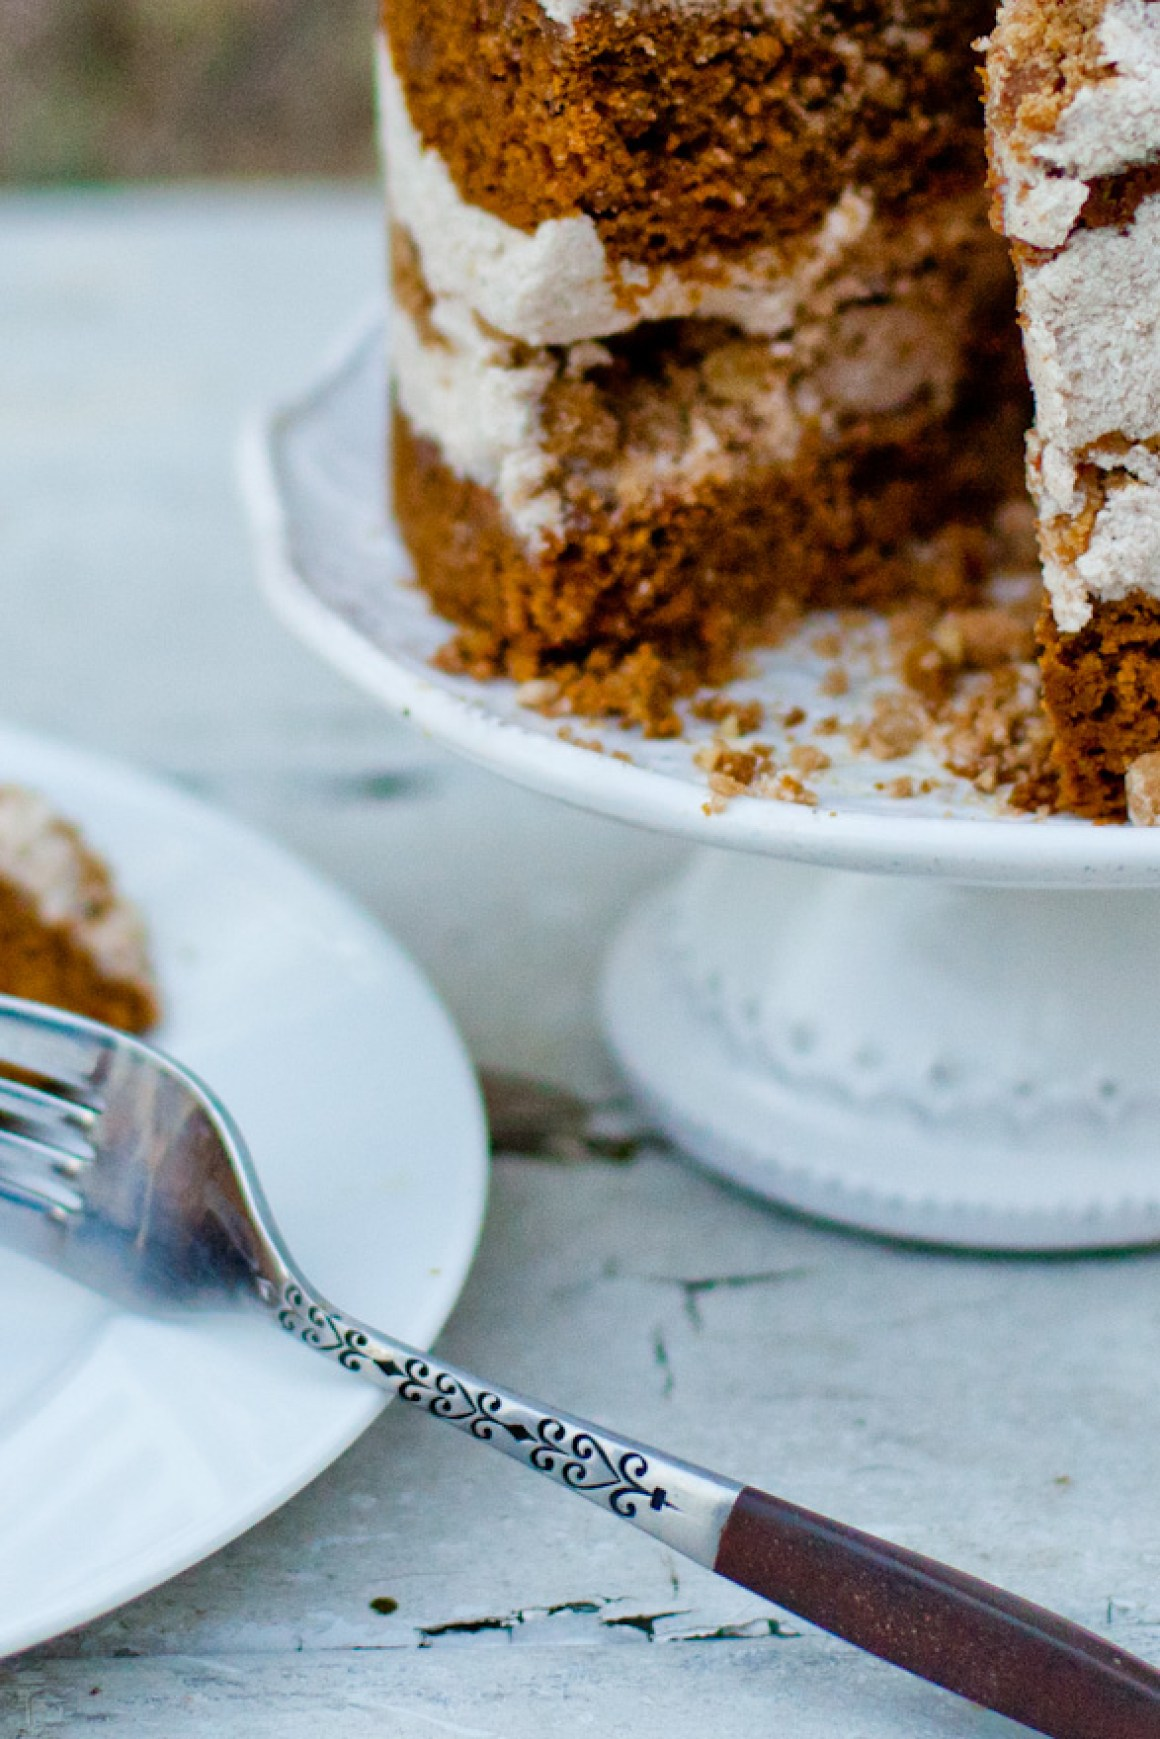 The most INCREDIBLE Fall Dessert Recipe | Vegan Pumpkin Spice Layer Cake | Whole Wheat Naked Layer Cake | Cream Cheese Frosting | Pecan Cookie Crumbs